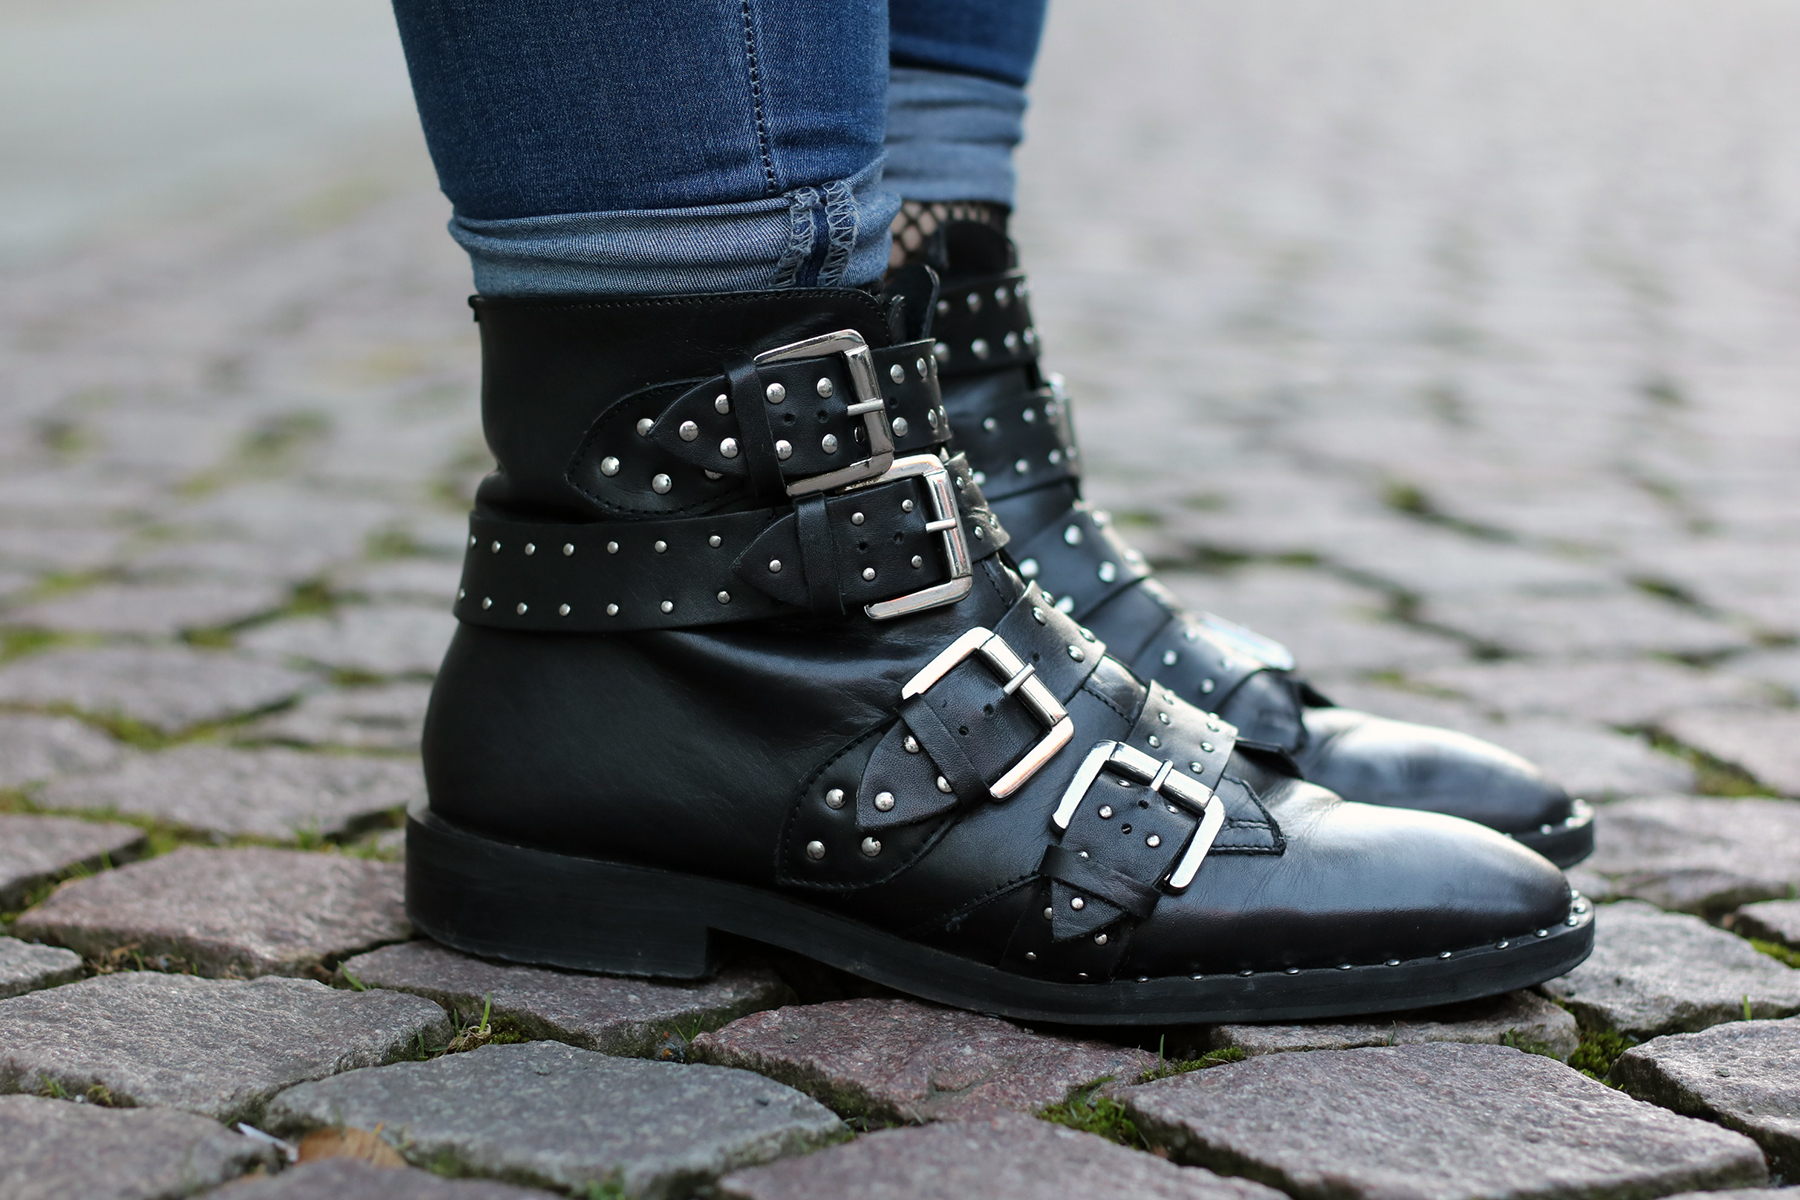 givenchy-lookalike-boots-schuhe-modeblog-fashionblog-designer-lowbudget-outfit